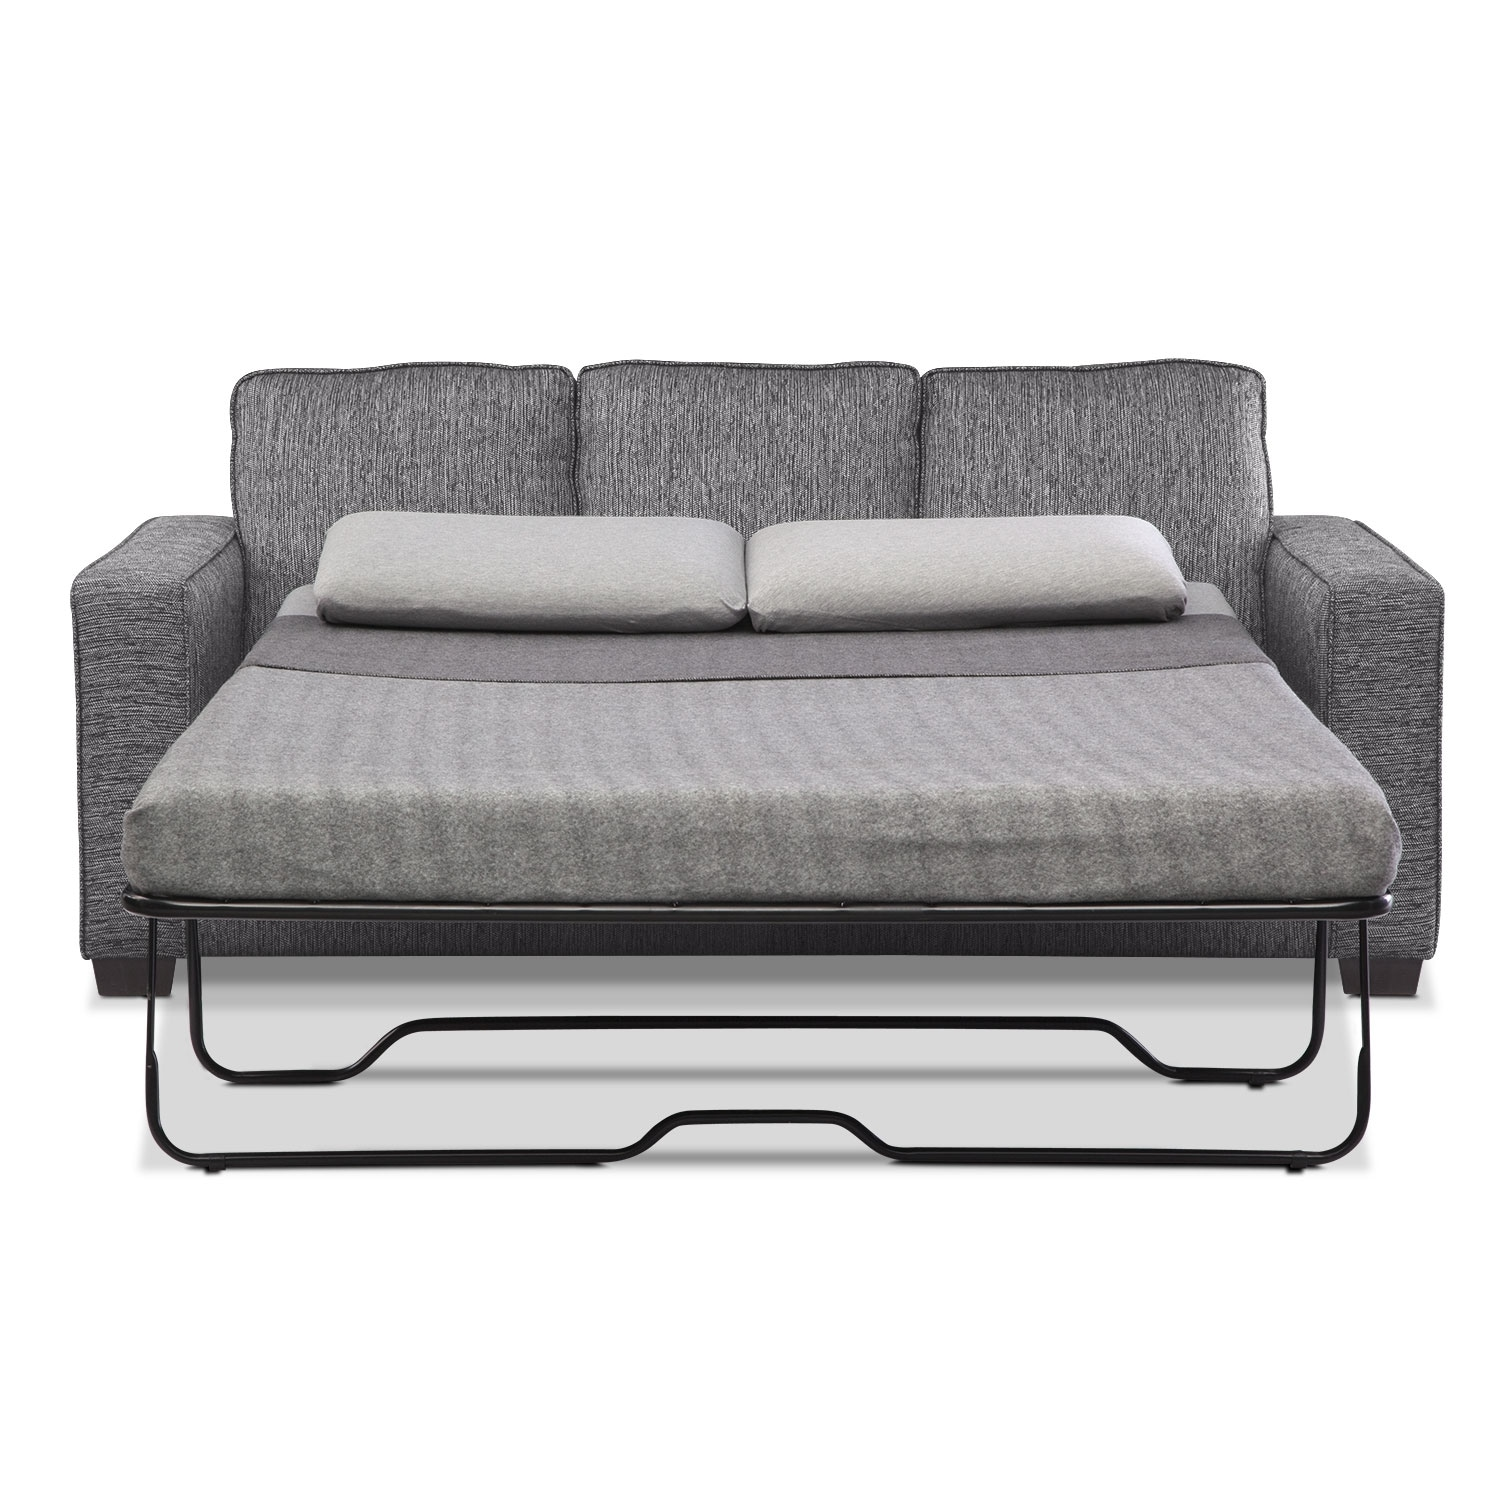 Sofa Bed For Sale In Quezon City: Sterling Memory Foam Sleeper Sofa With Chaise